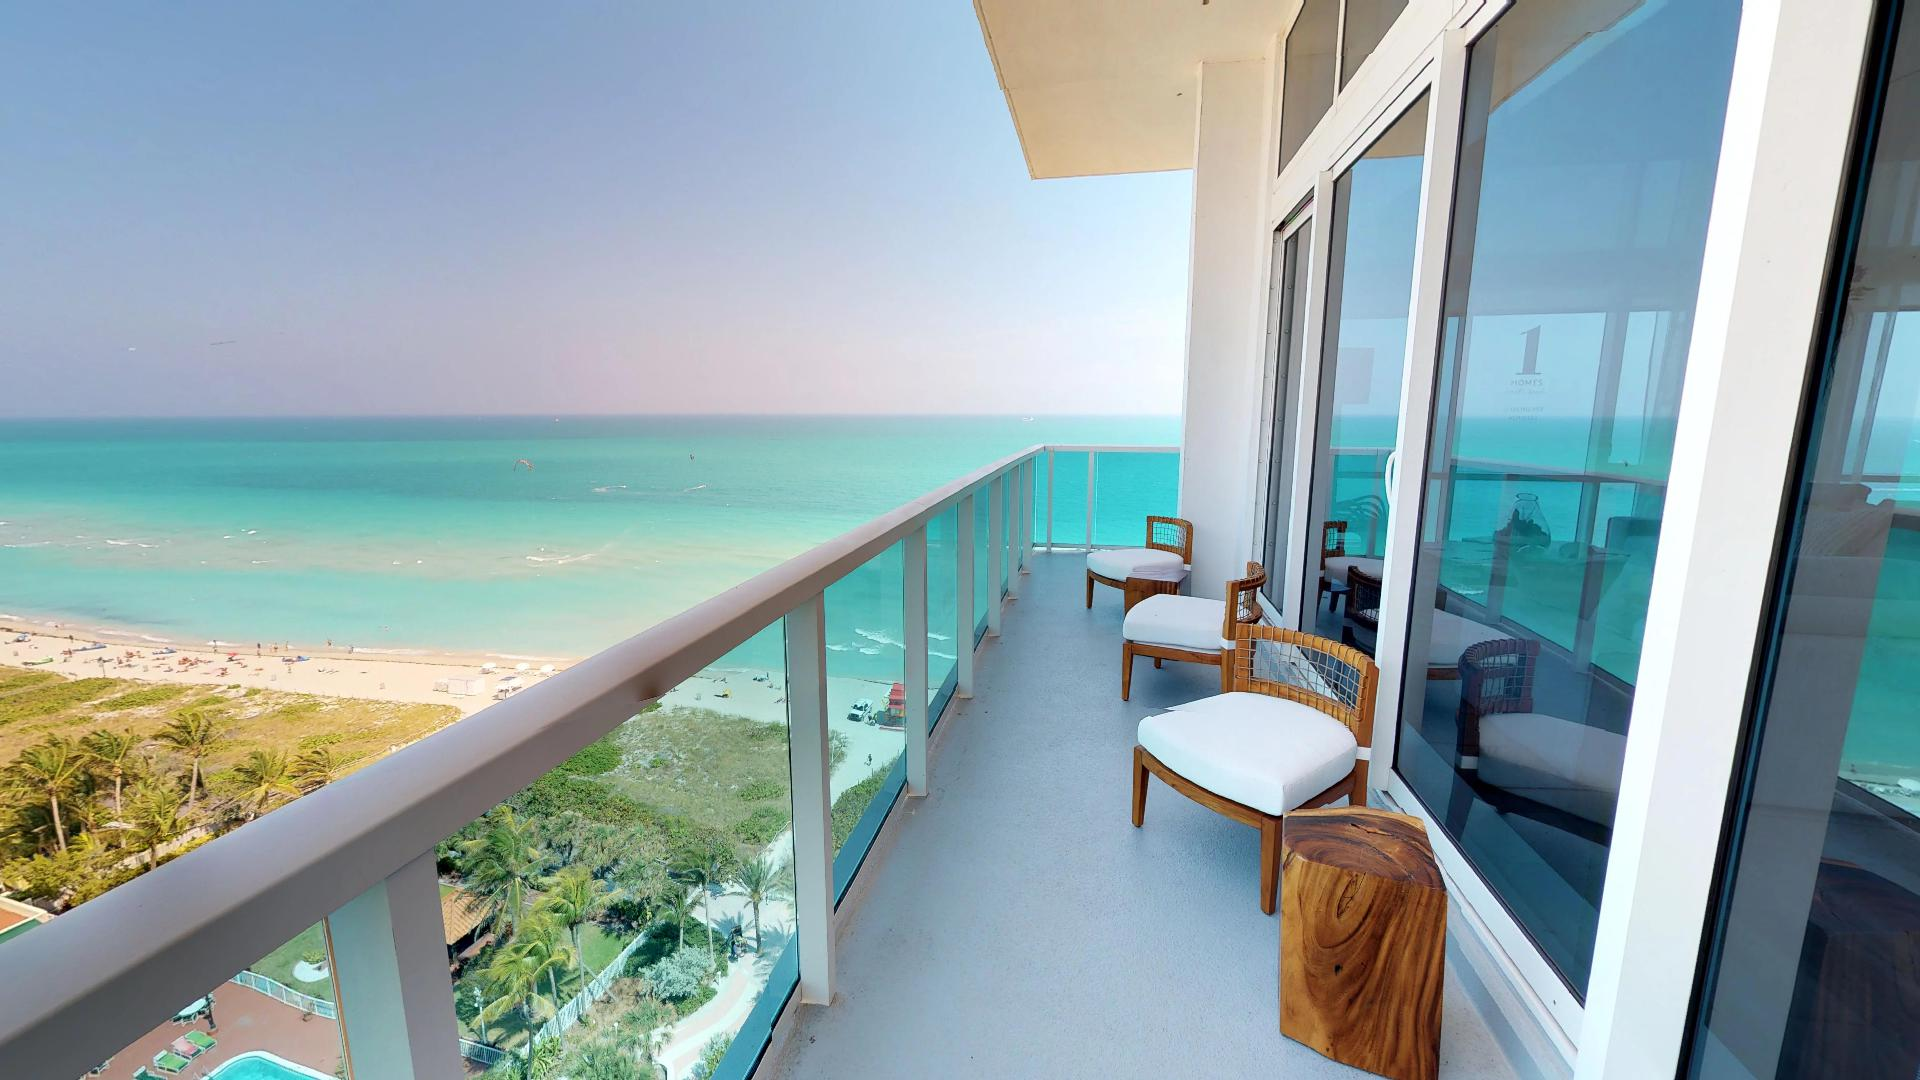 1 Hotel and Homes South Beach Penthouse 1609 First Floor Balcony